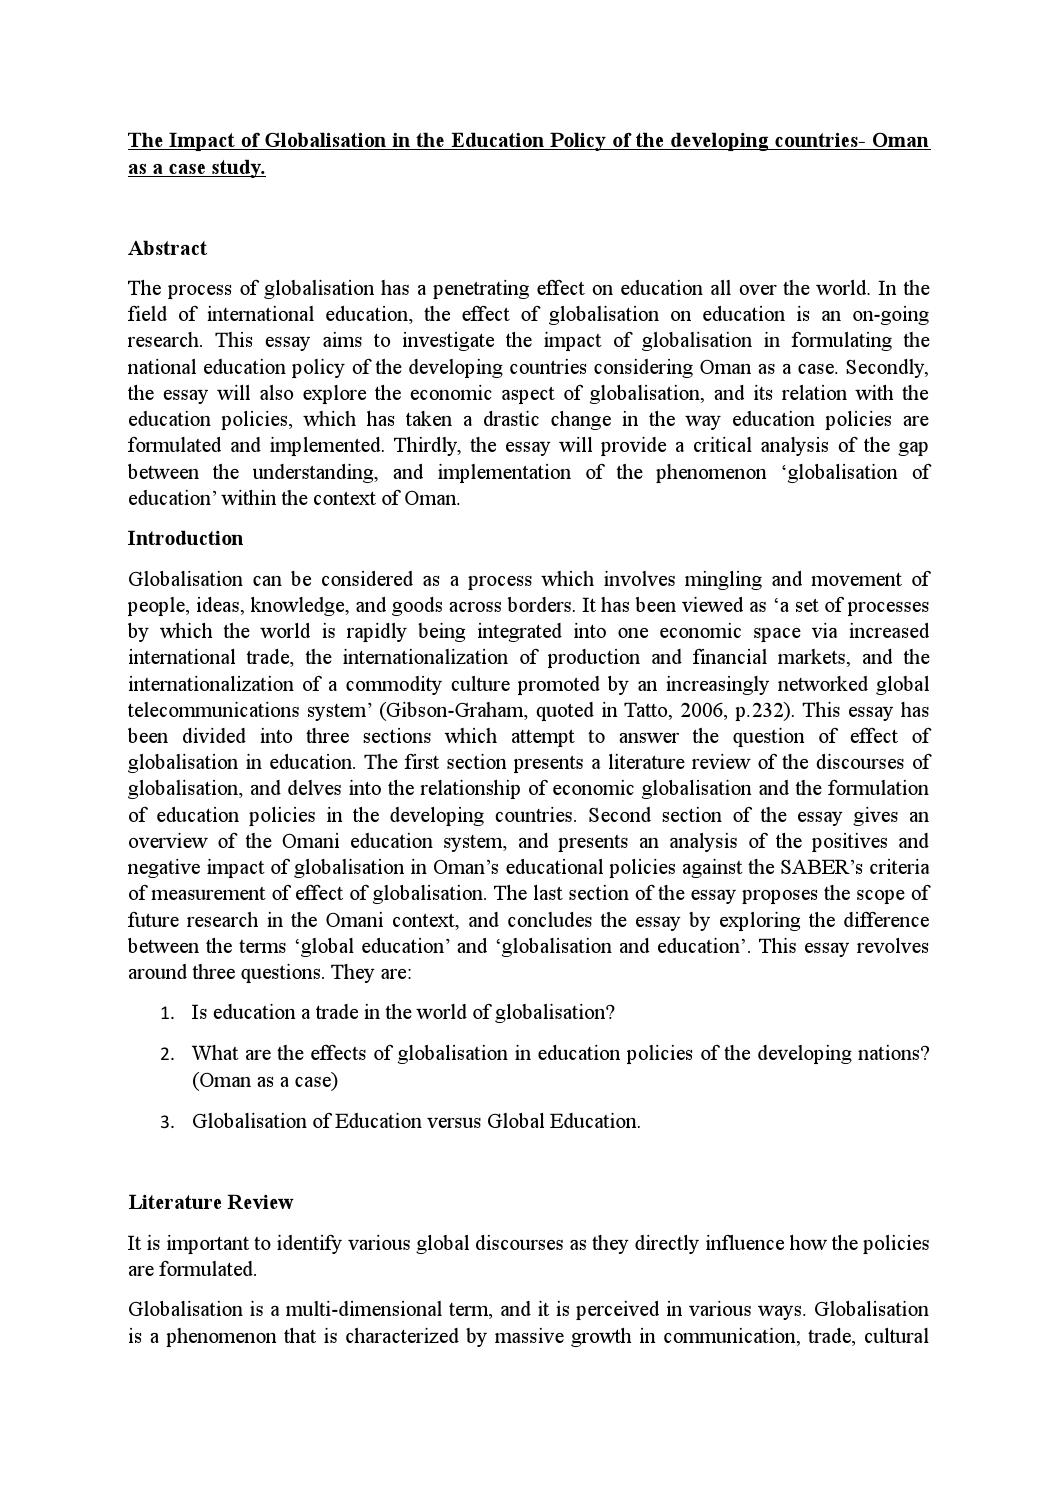 essays on globalisation the impact of globalisation in the  the impact of globalisation in the education policy of the the impact of globalisation in the communism essay